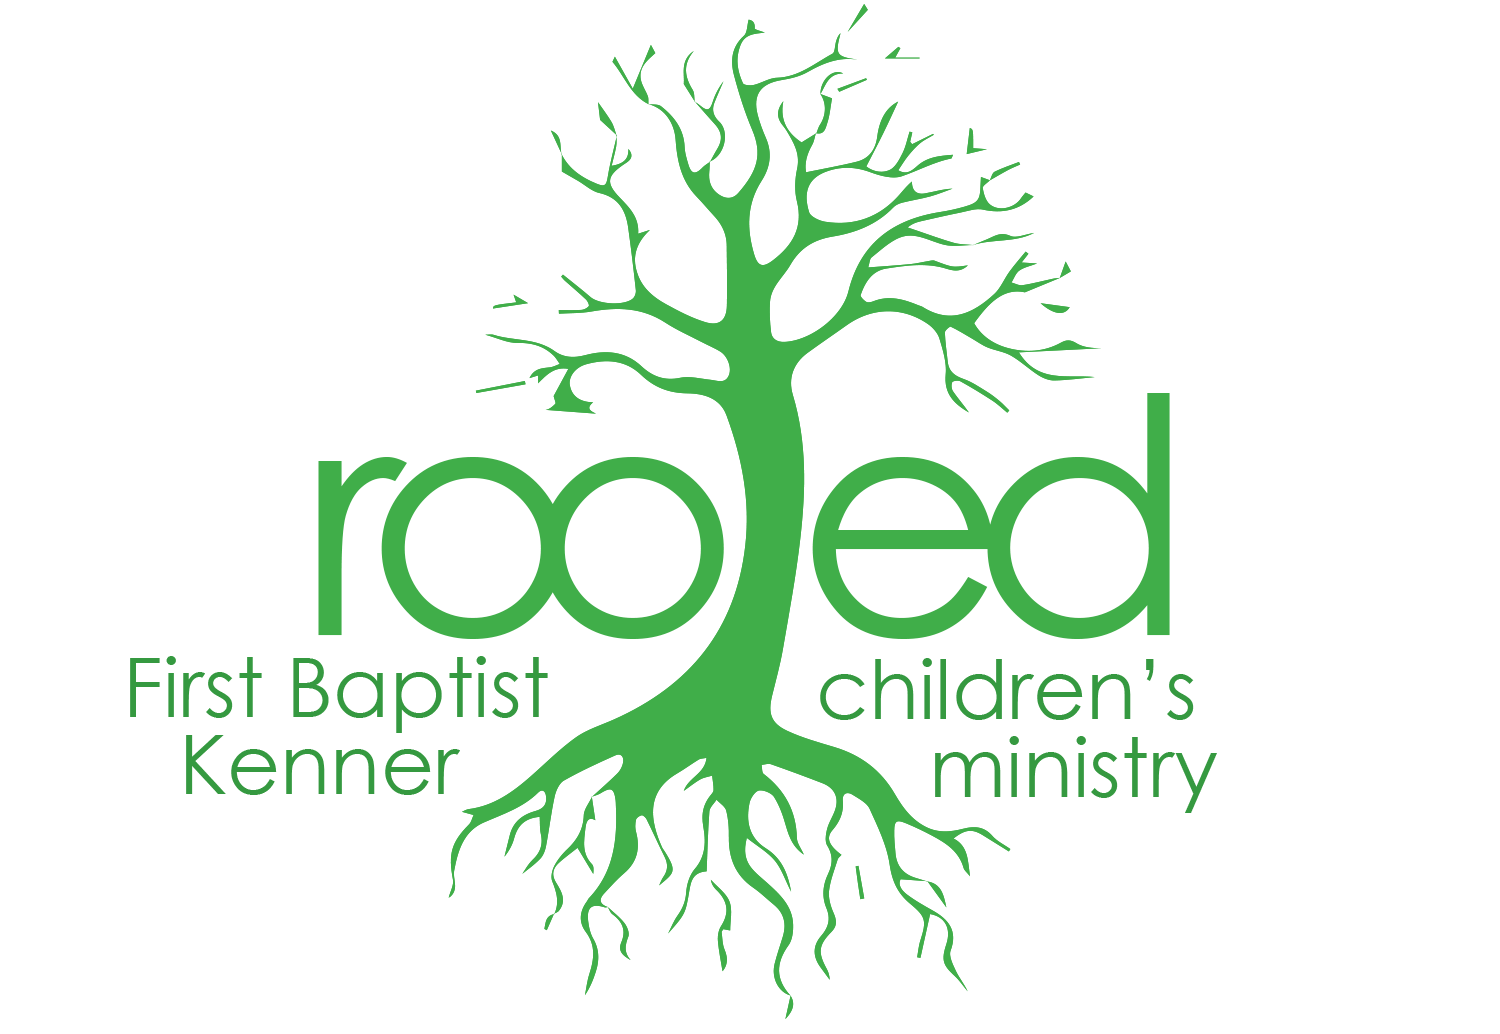 baptistrooted